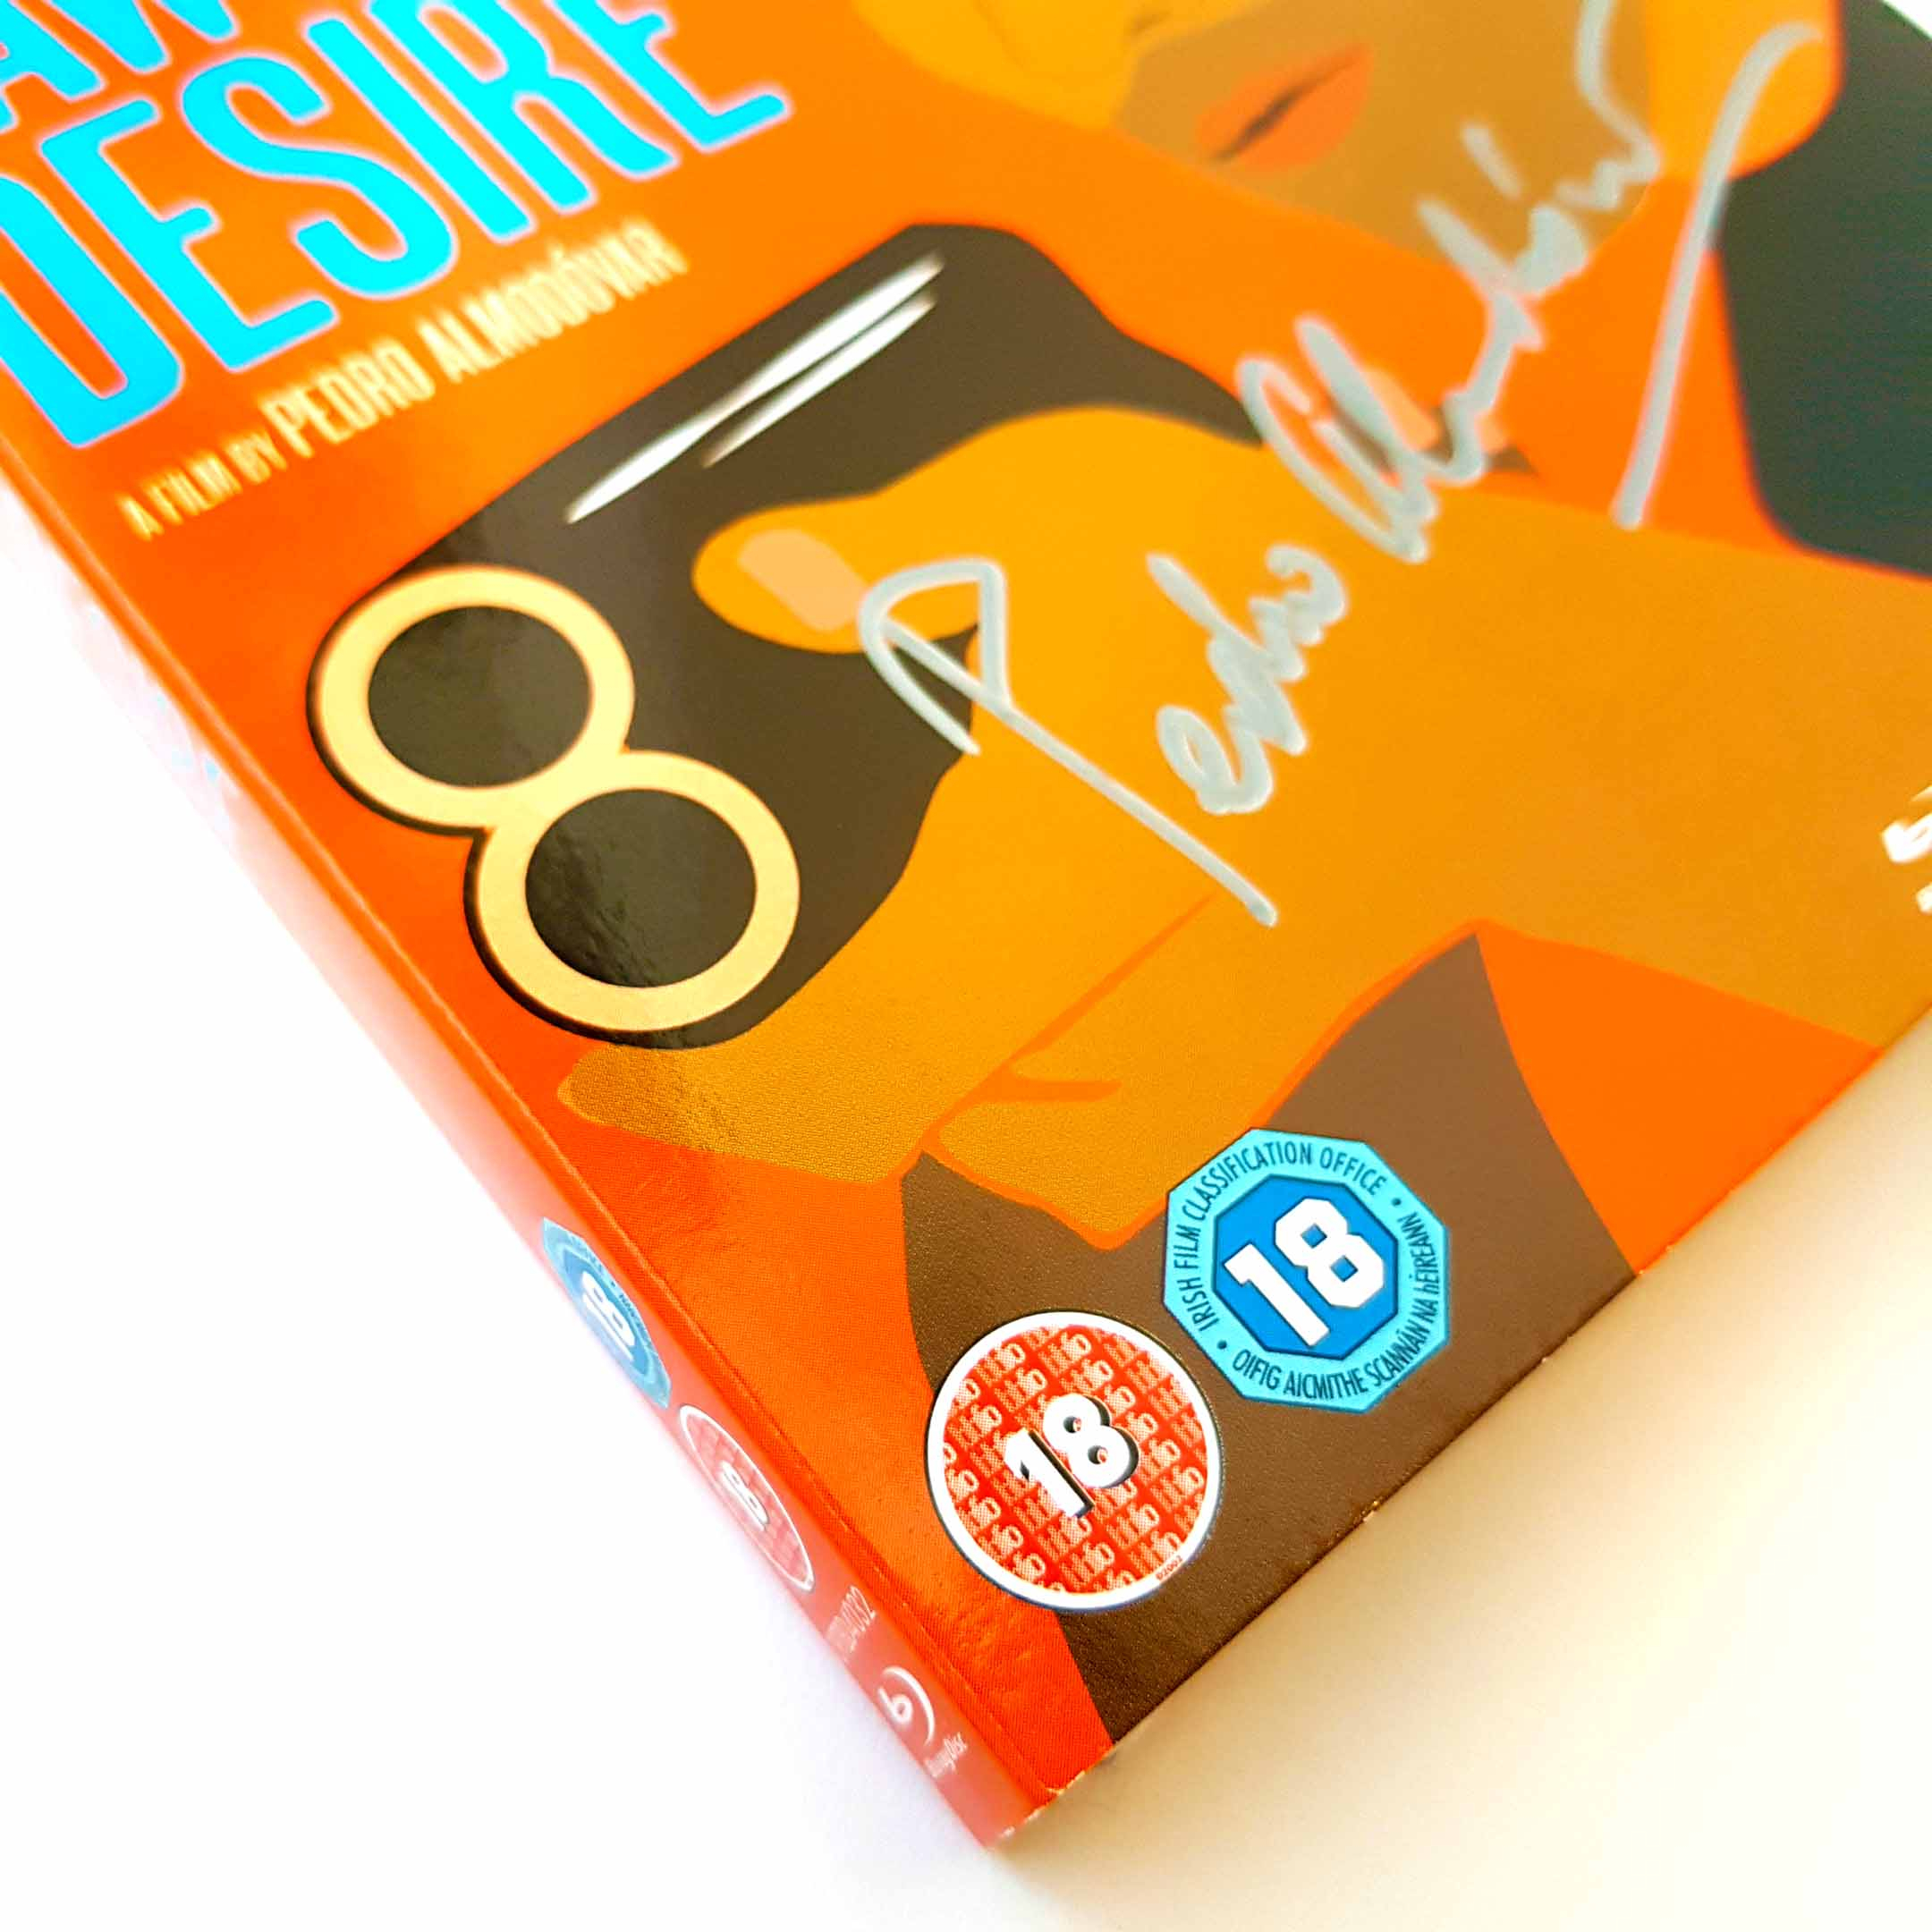 Buy Law of Desire (Blu-ray) SIGNED BY PEDRO ALMODOVAR